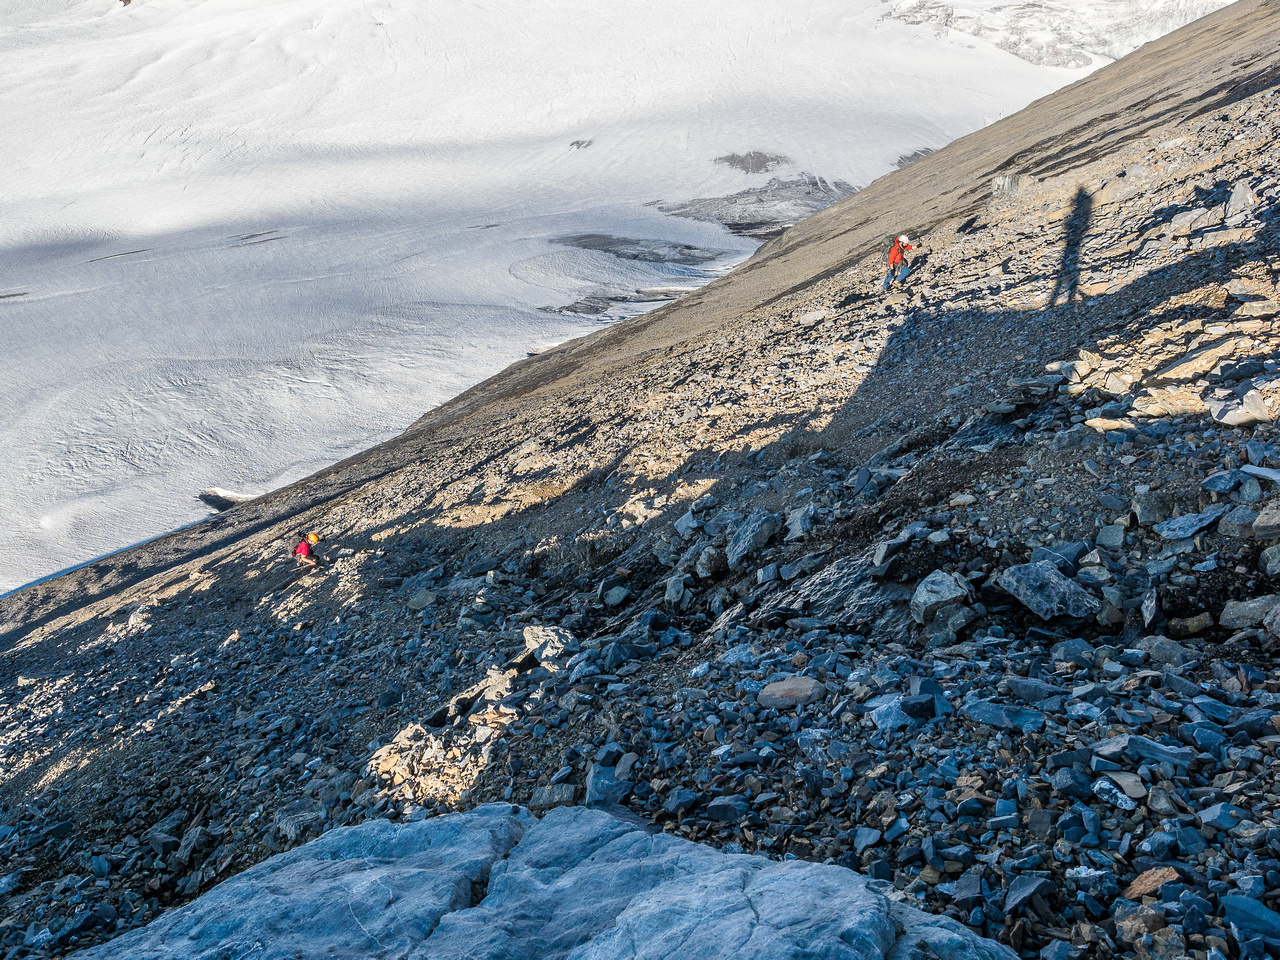 Grinding our way up the south face scree slope now.